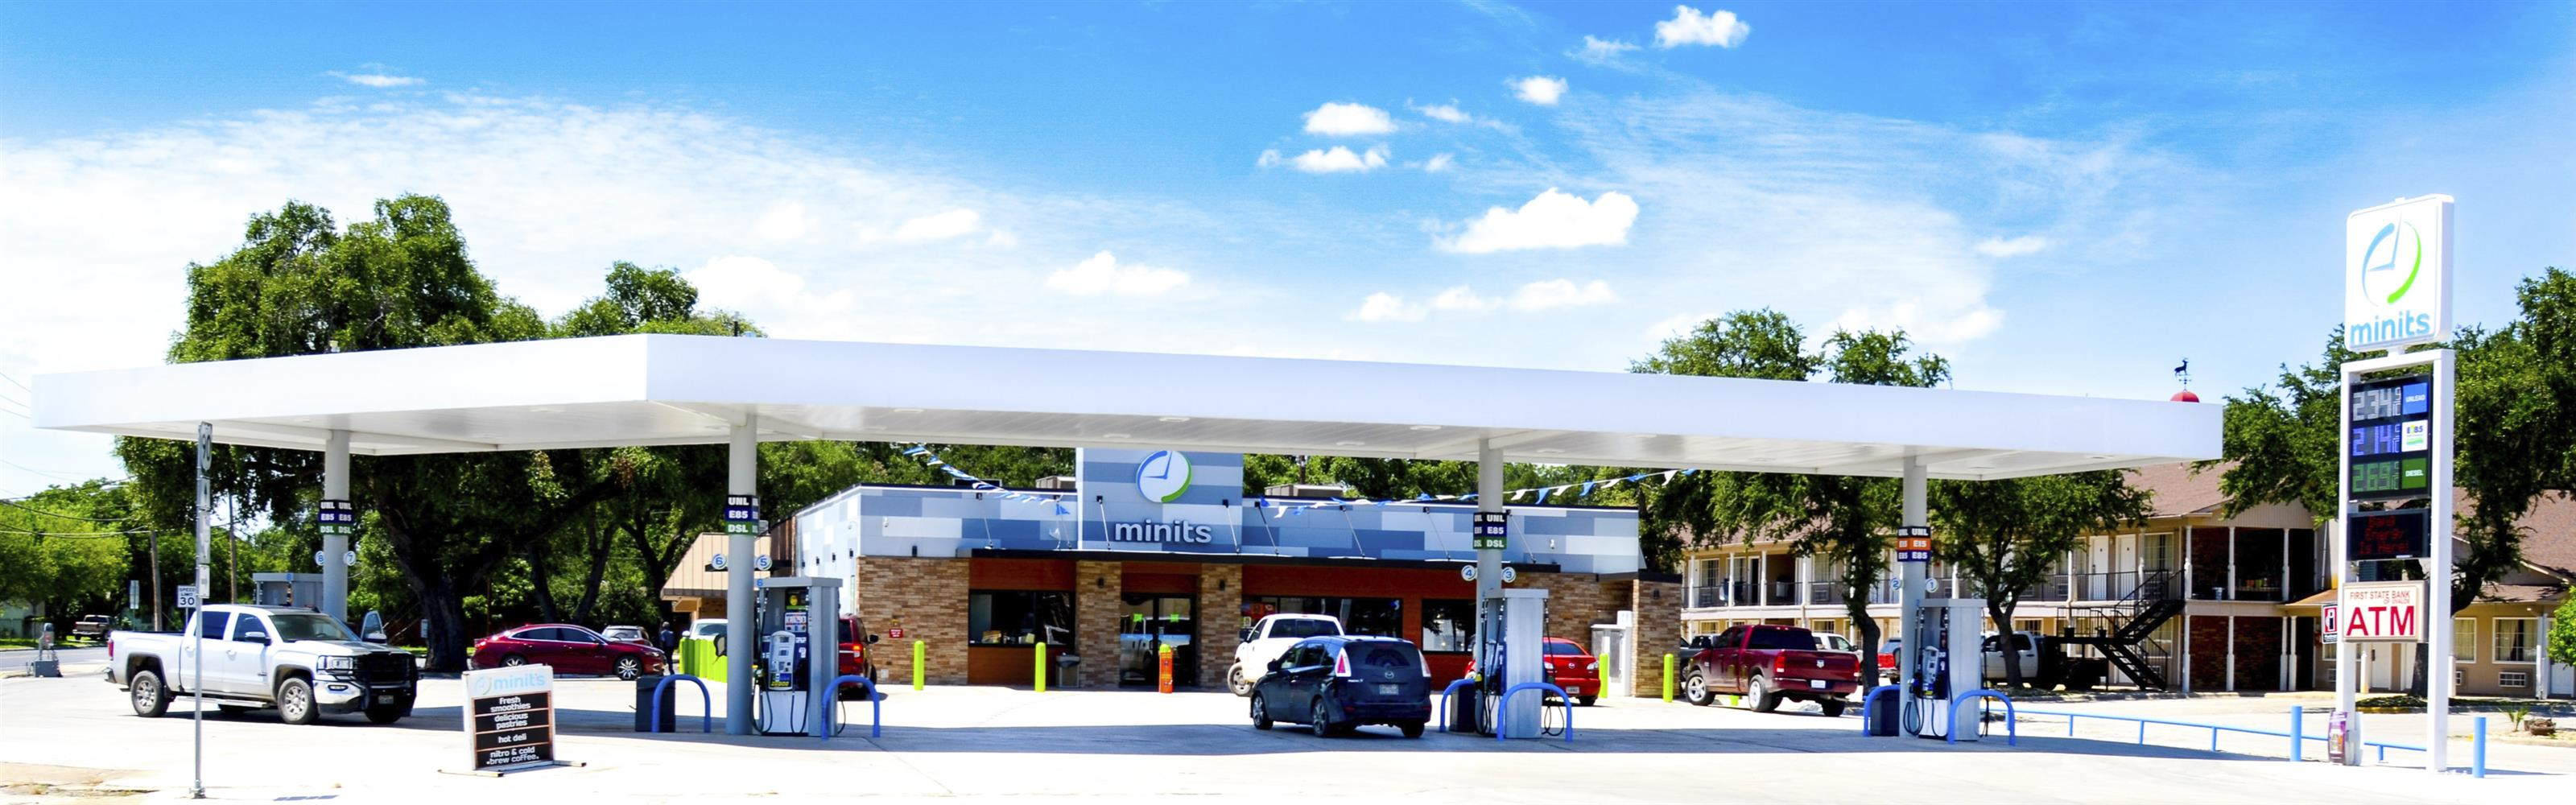 the gas station outside of the minits shopping center